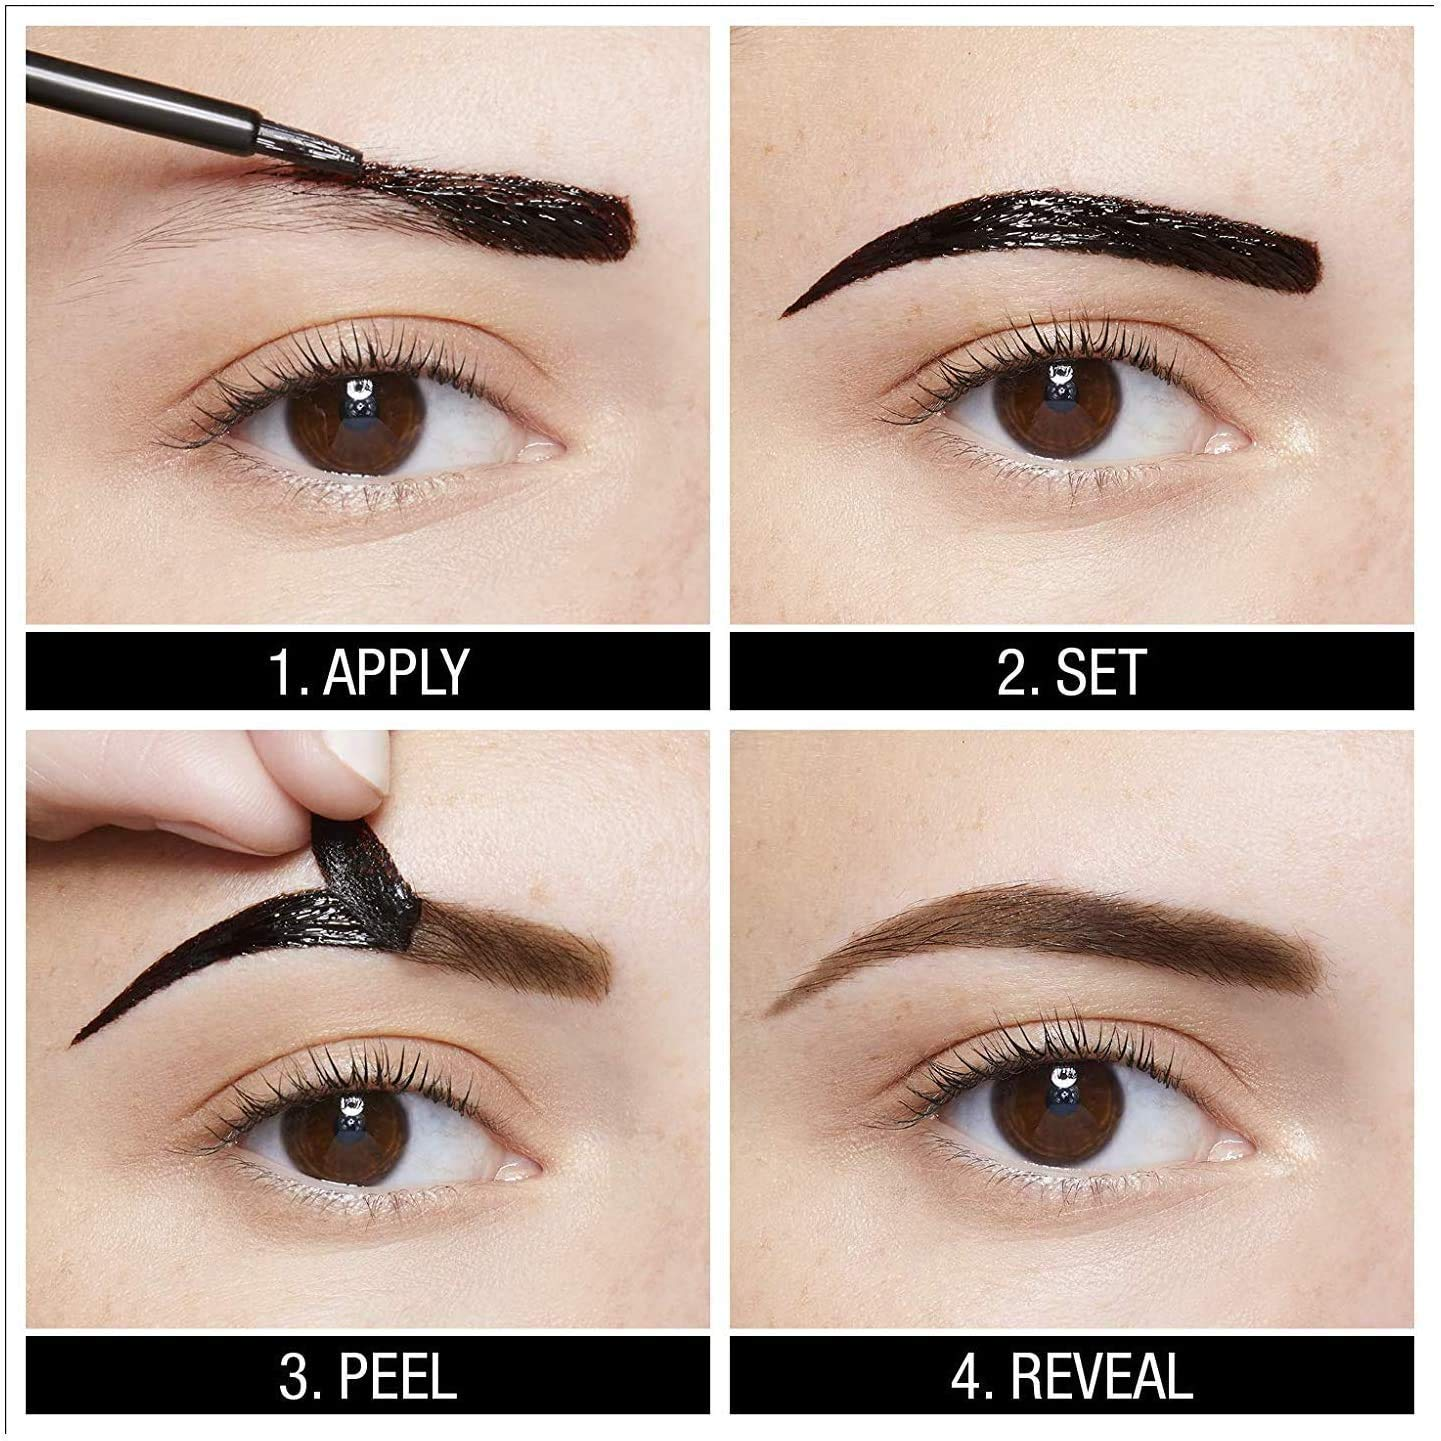 How to apply the product